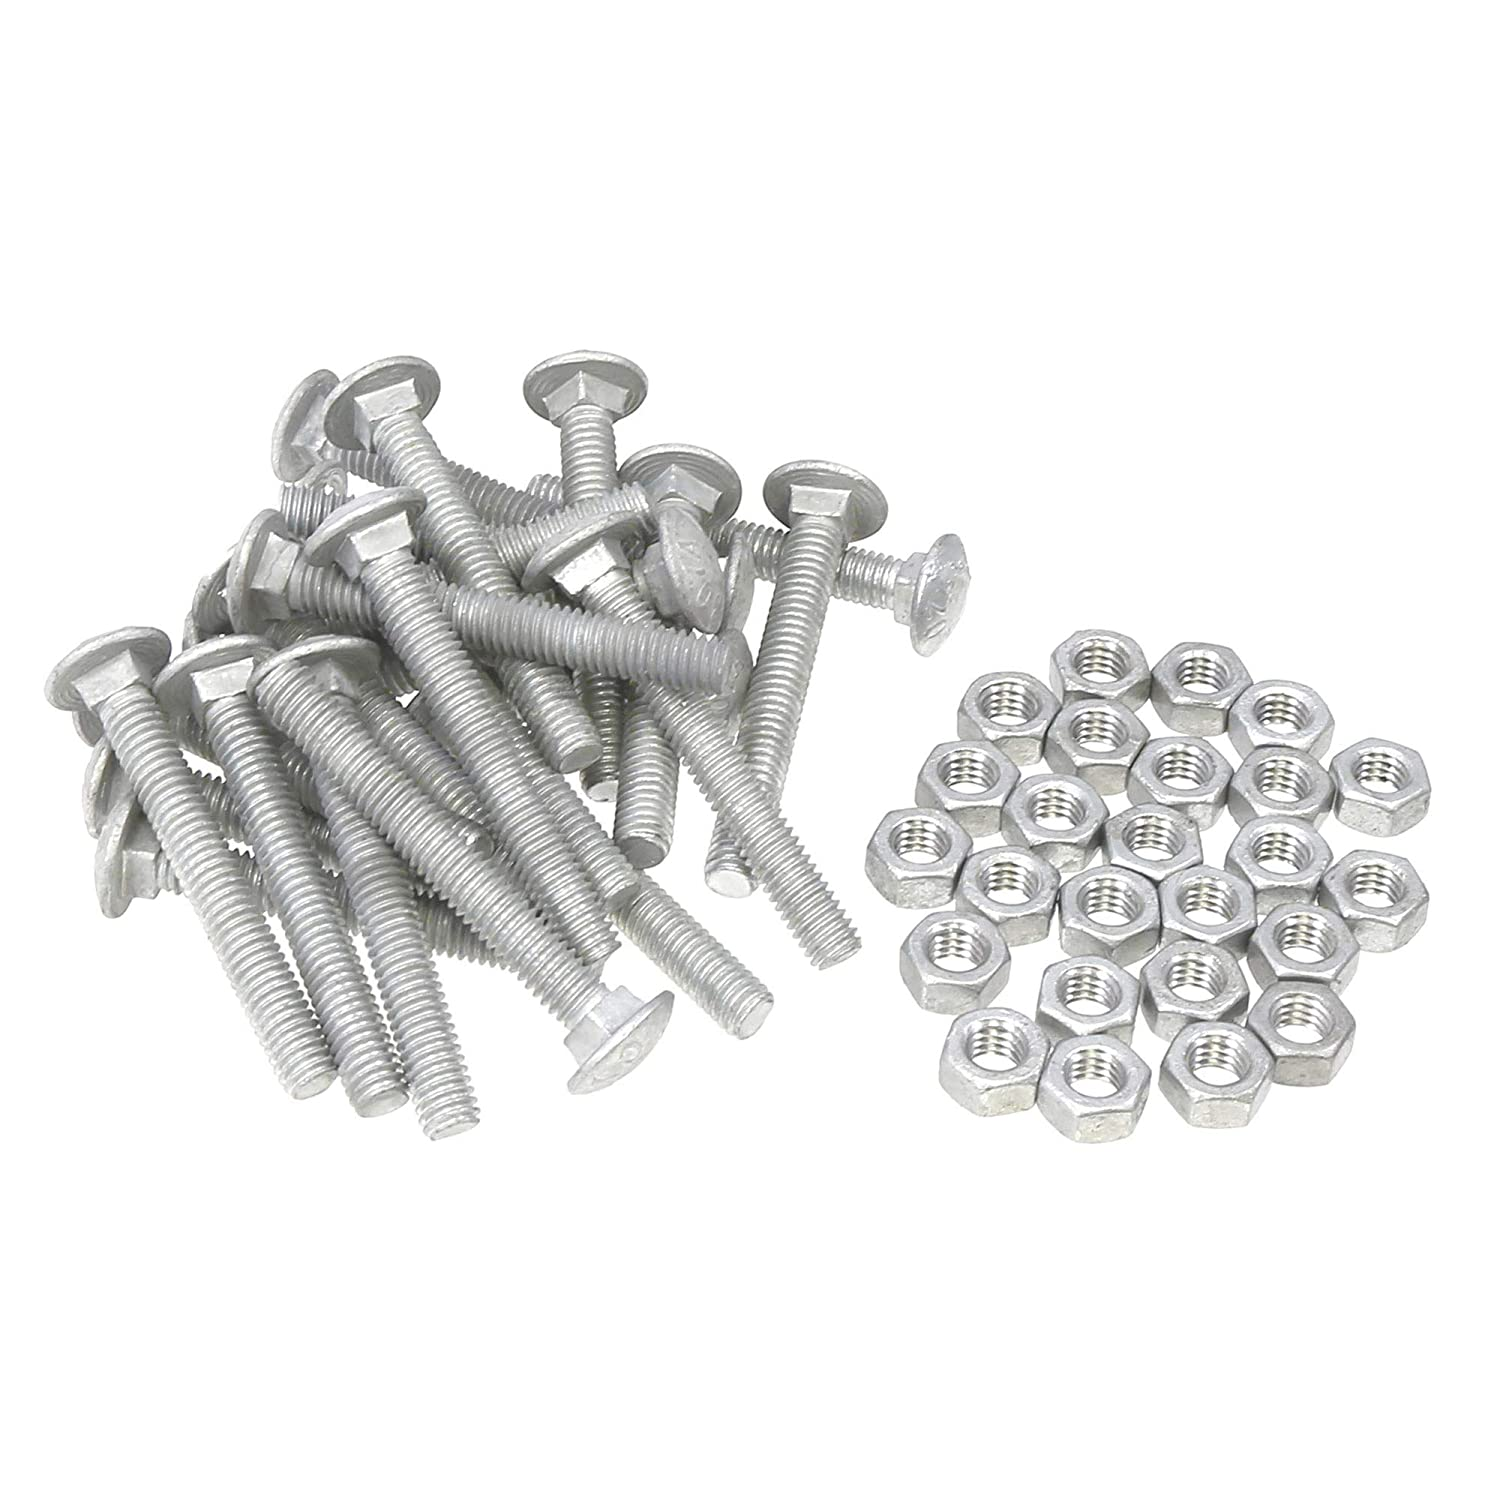 Set of 25 Galvanized Steel 5//16 x 2 1//2 Long Carriage Bolts with Nuts